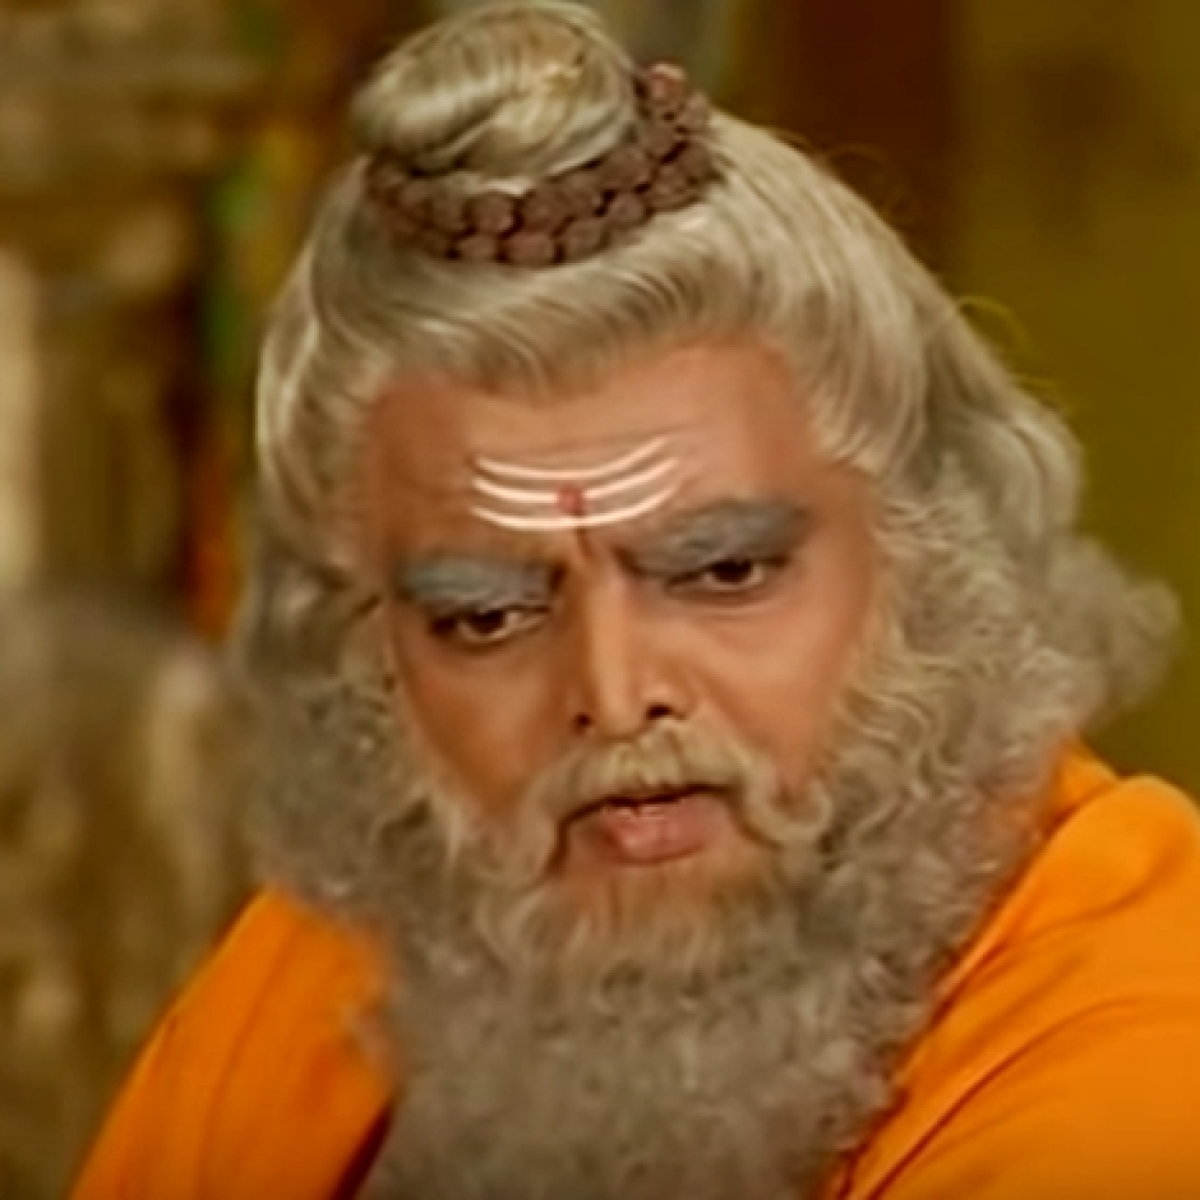 Meet Aslam Khan, the proxy actor you didn't notice who played several roles in 'Ramayan'